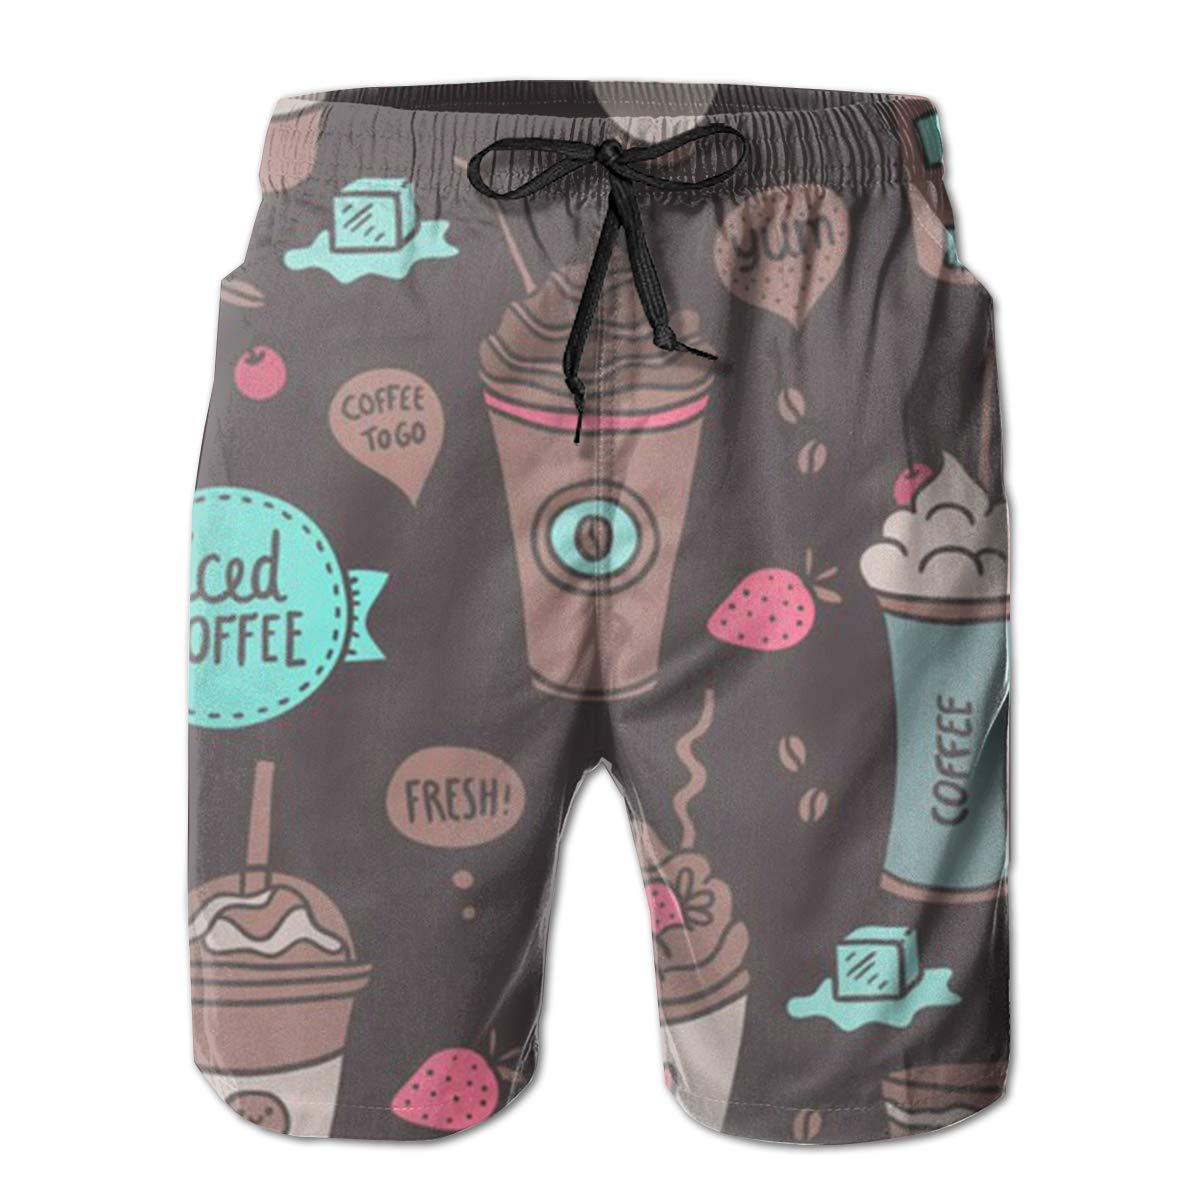 Sweet Drinks Swim Shorts Mens Swim Trunks Beach Shorts Board Shorts